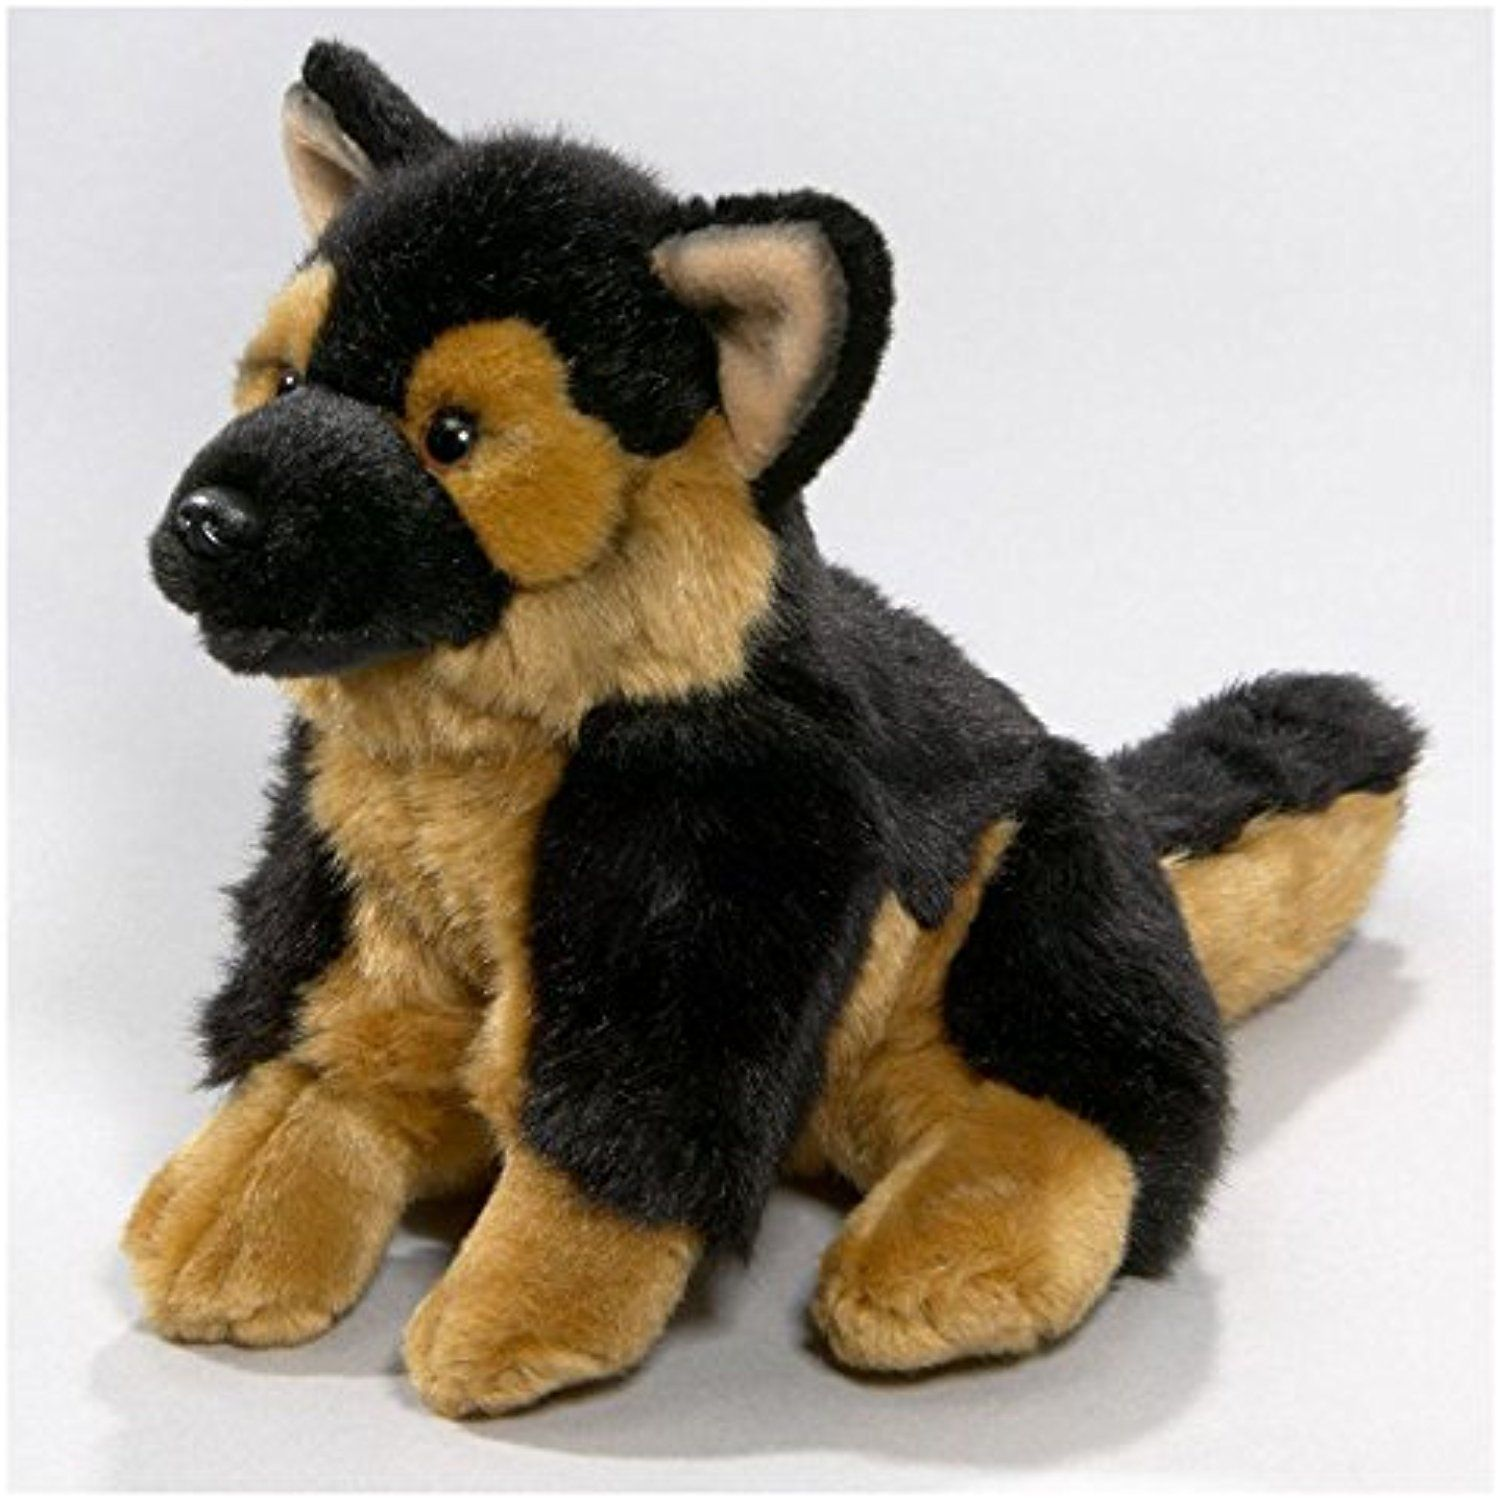 Stuffed Animal German Shepherd Dog sitting, 8 inches, 21cm